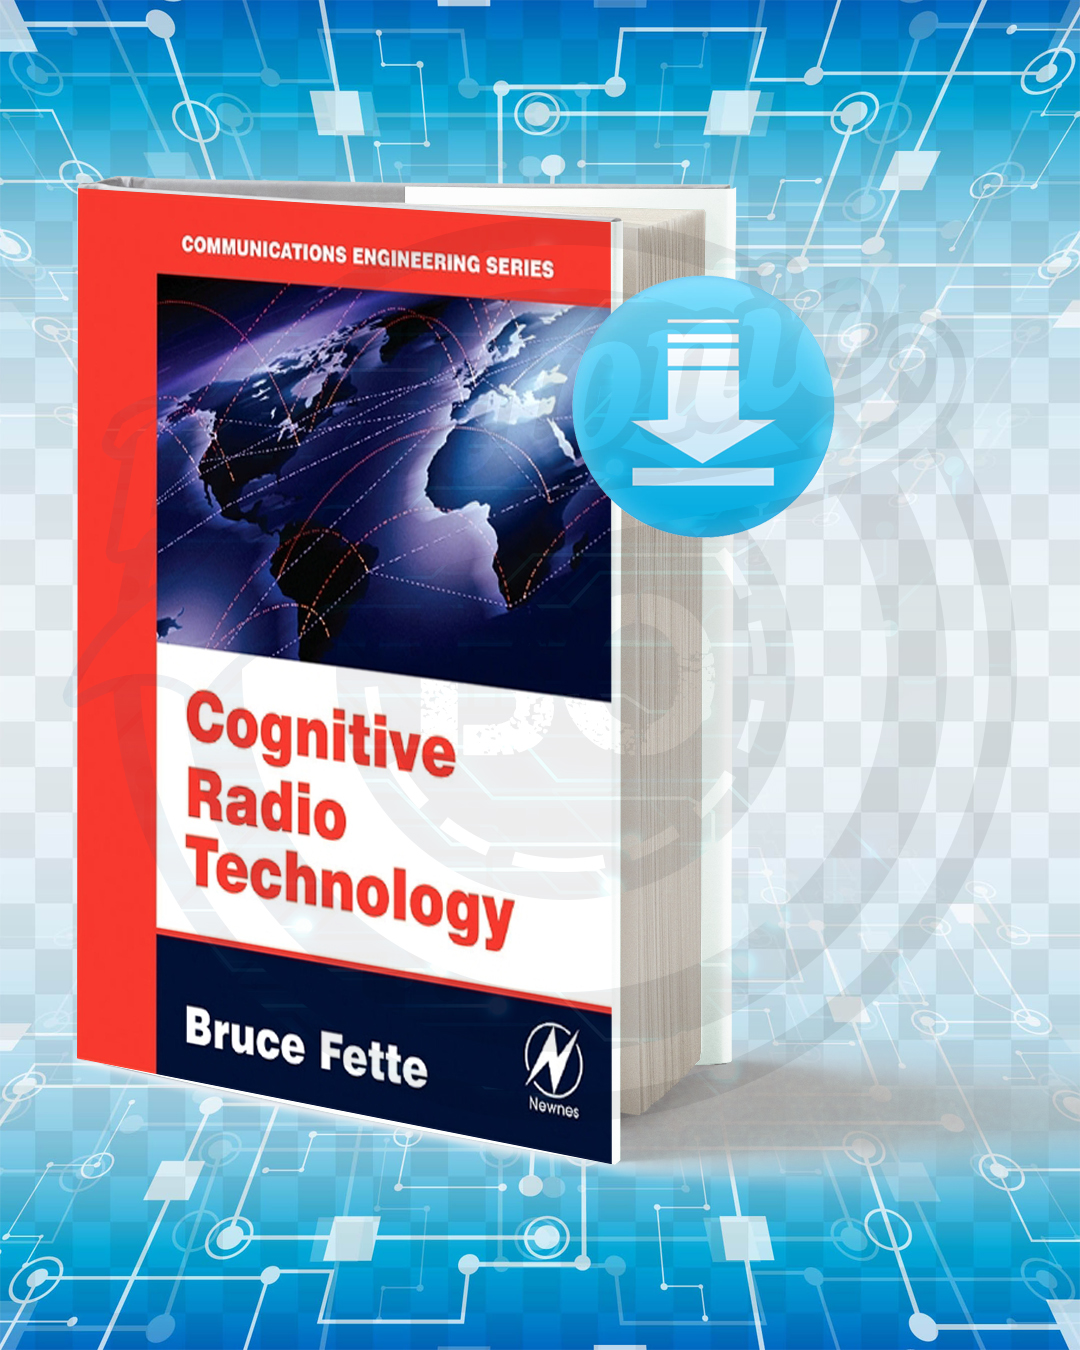 Free Book Cognitive Radio Technology pdf.